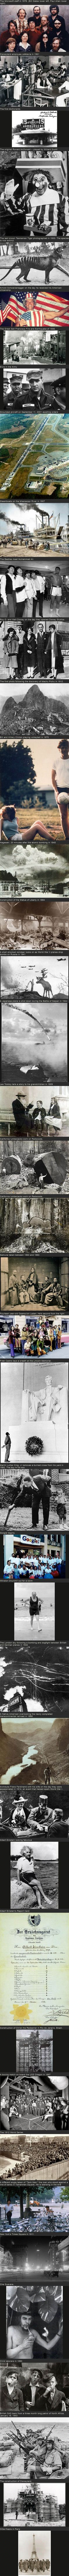 Real History in real pictures. Cool Pics!